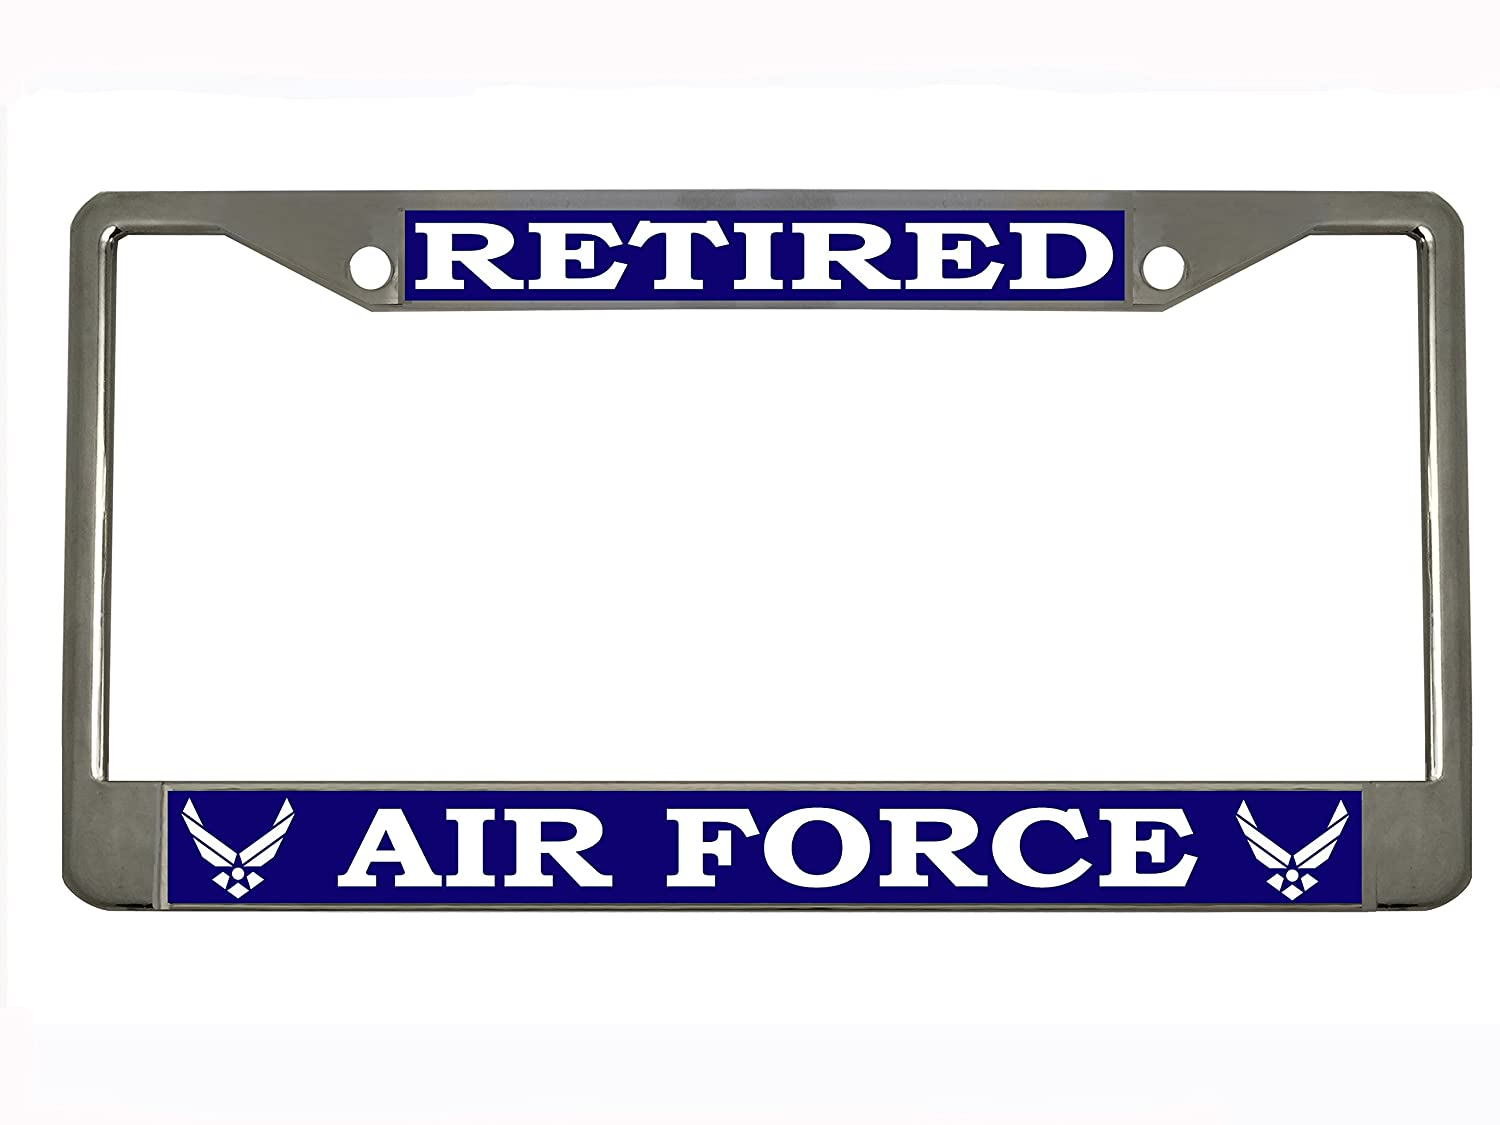 US Air Force Retired Steel License Plate Frame Tag Holder STHANCAT OF TAMPA